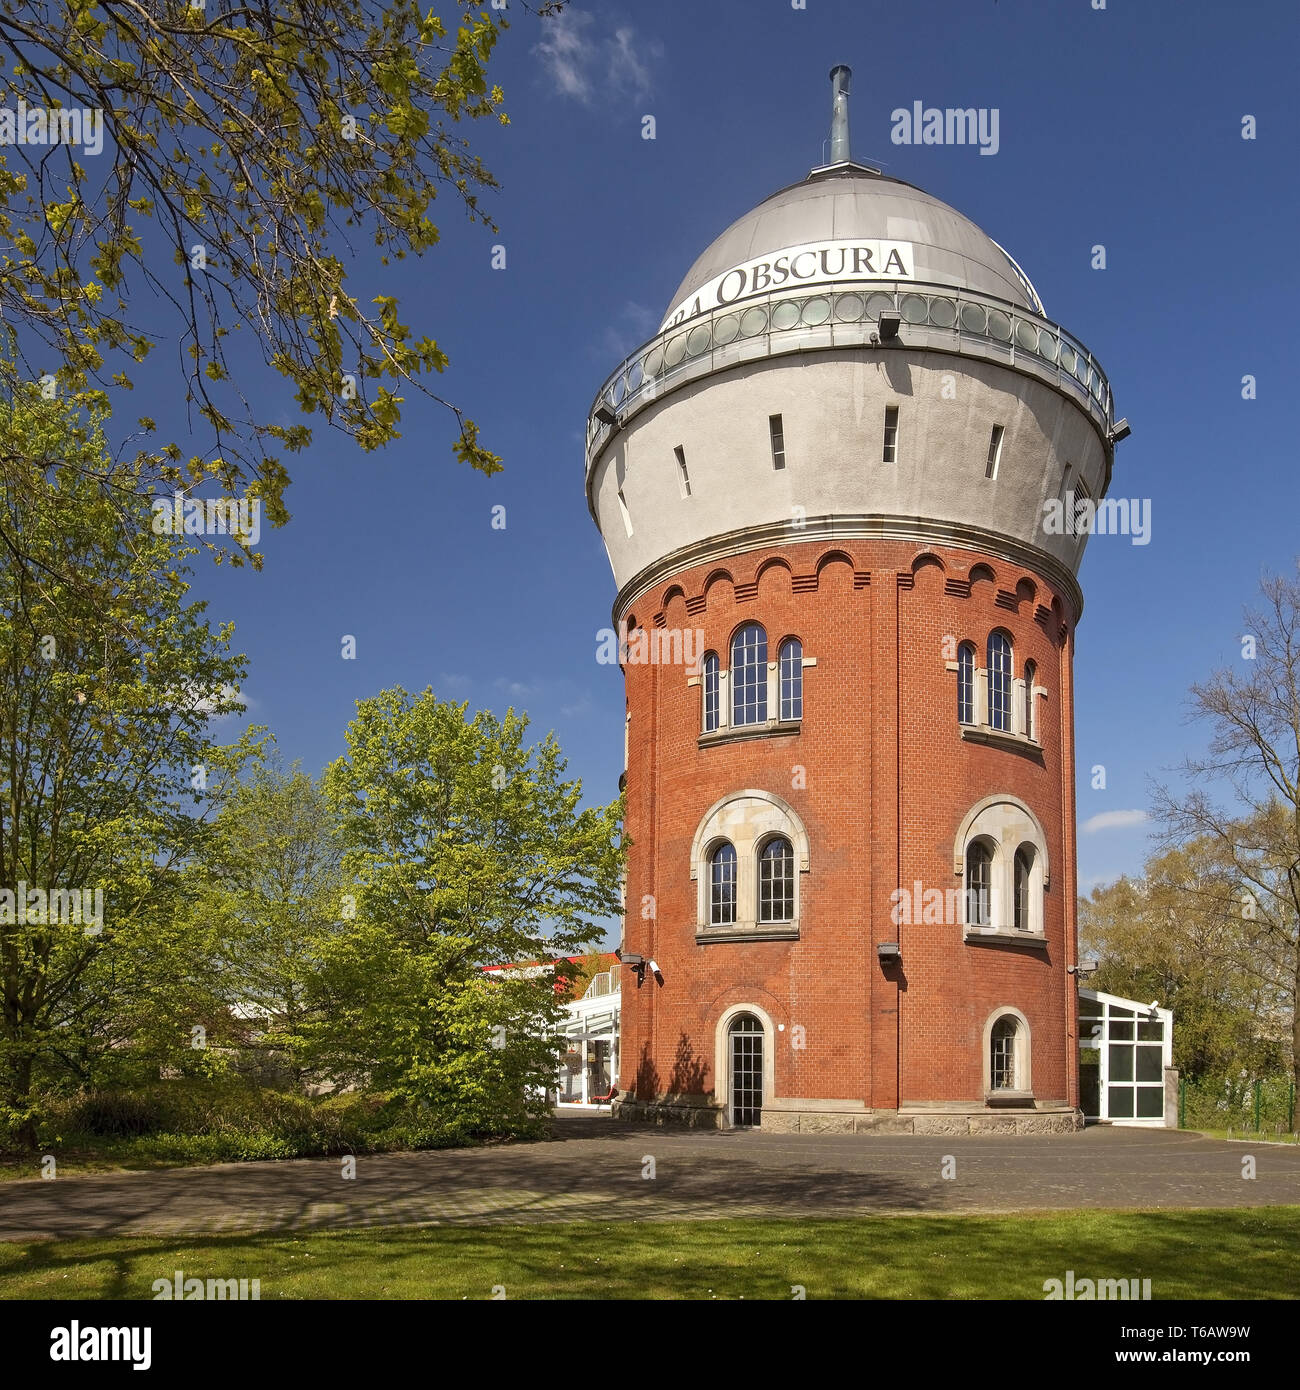 Camera Obscura, museum prehistory of film, Muelheim an der Ruhr, Ruhr Area, Germany - Stock Image